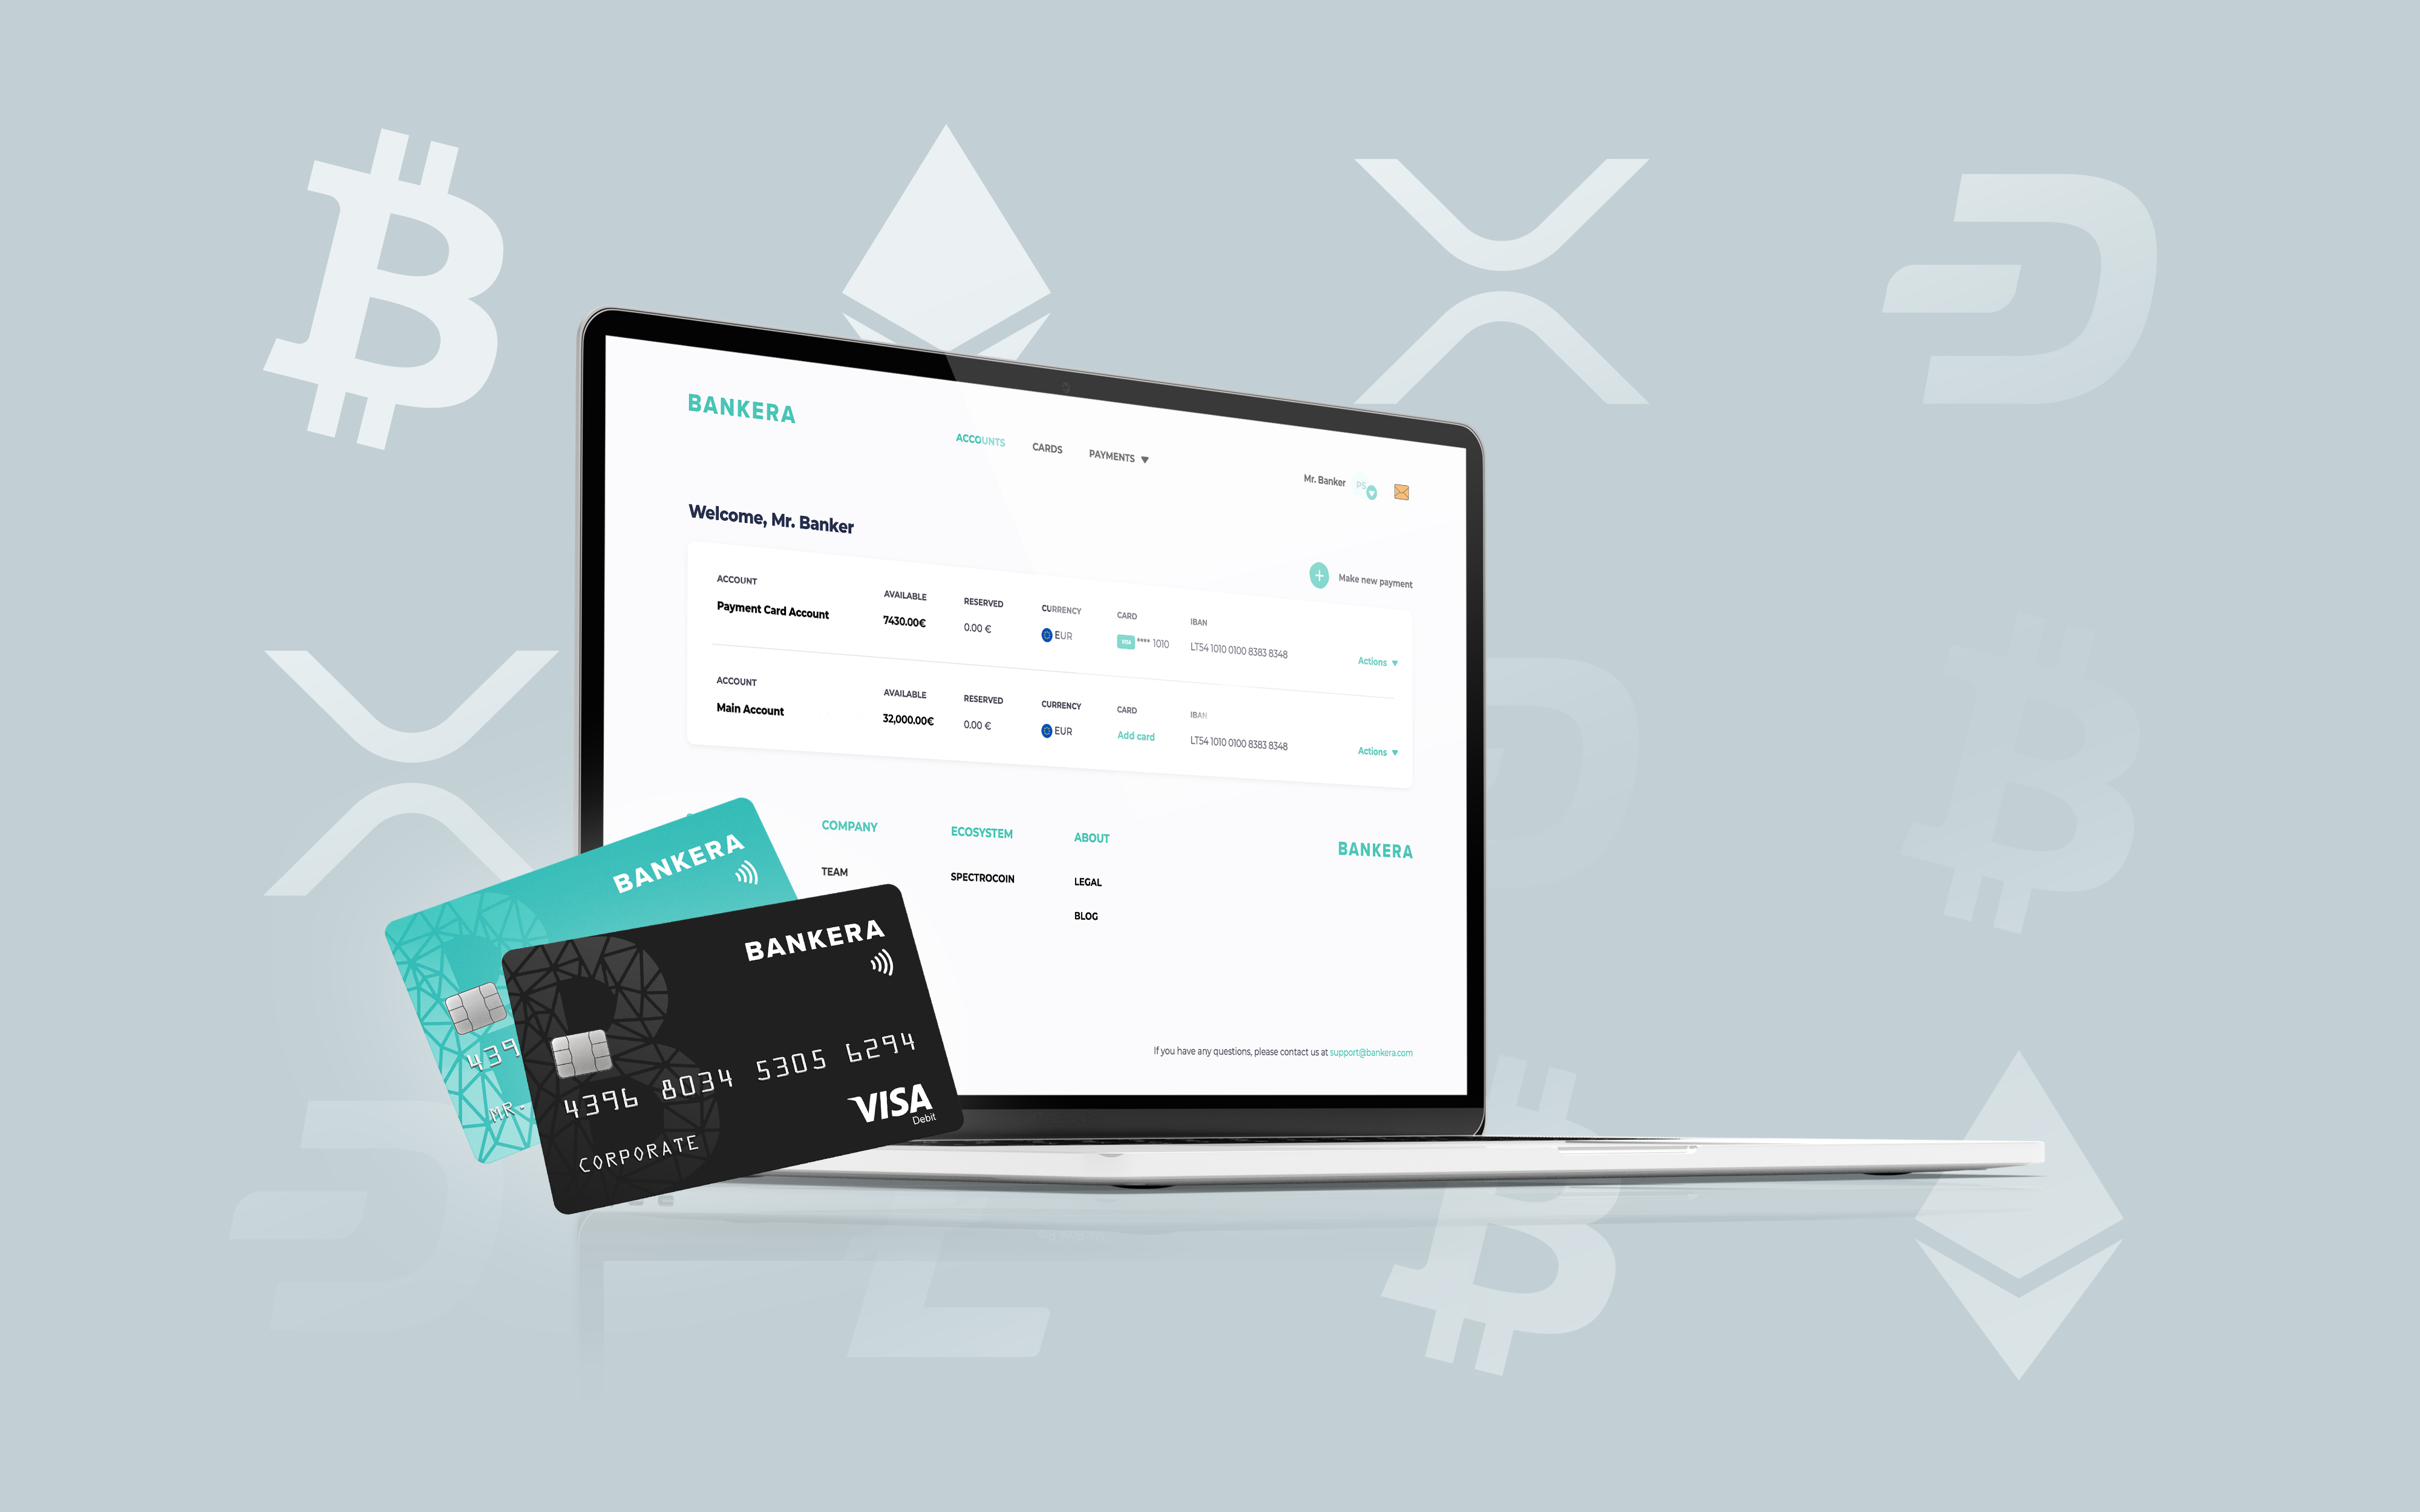 Bankera Introduces SEPA Instant Payments for Crypto Businesses